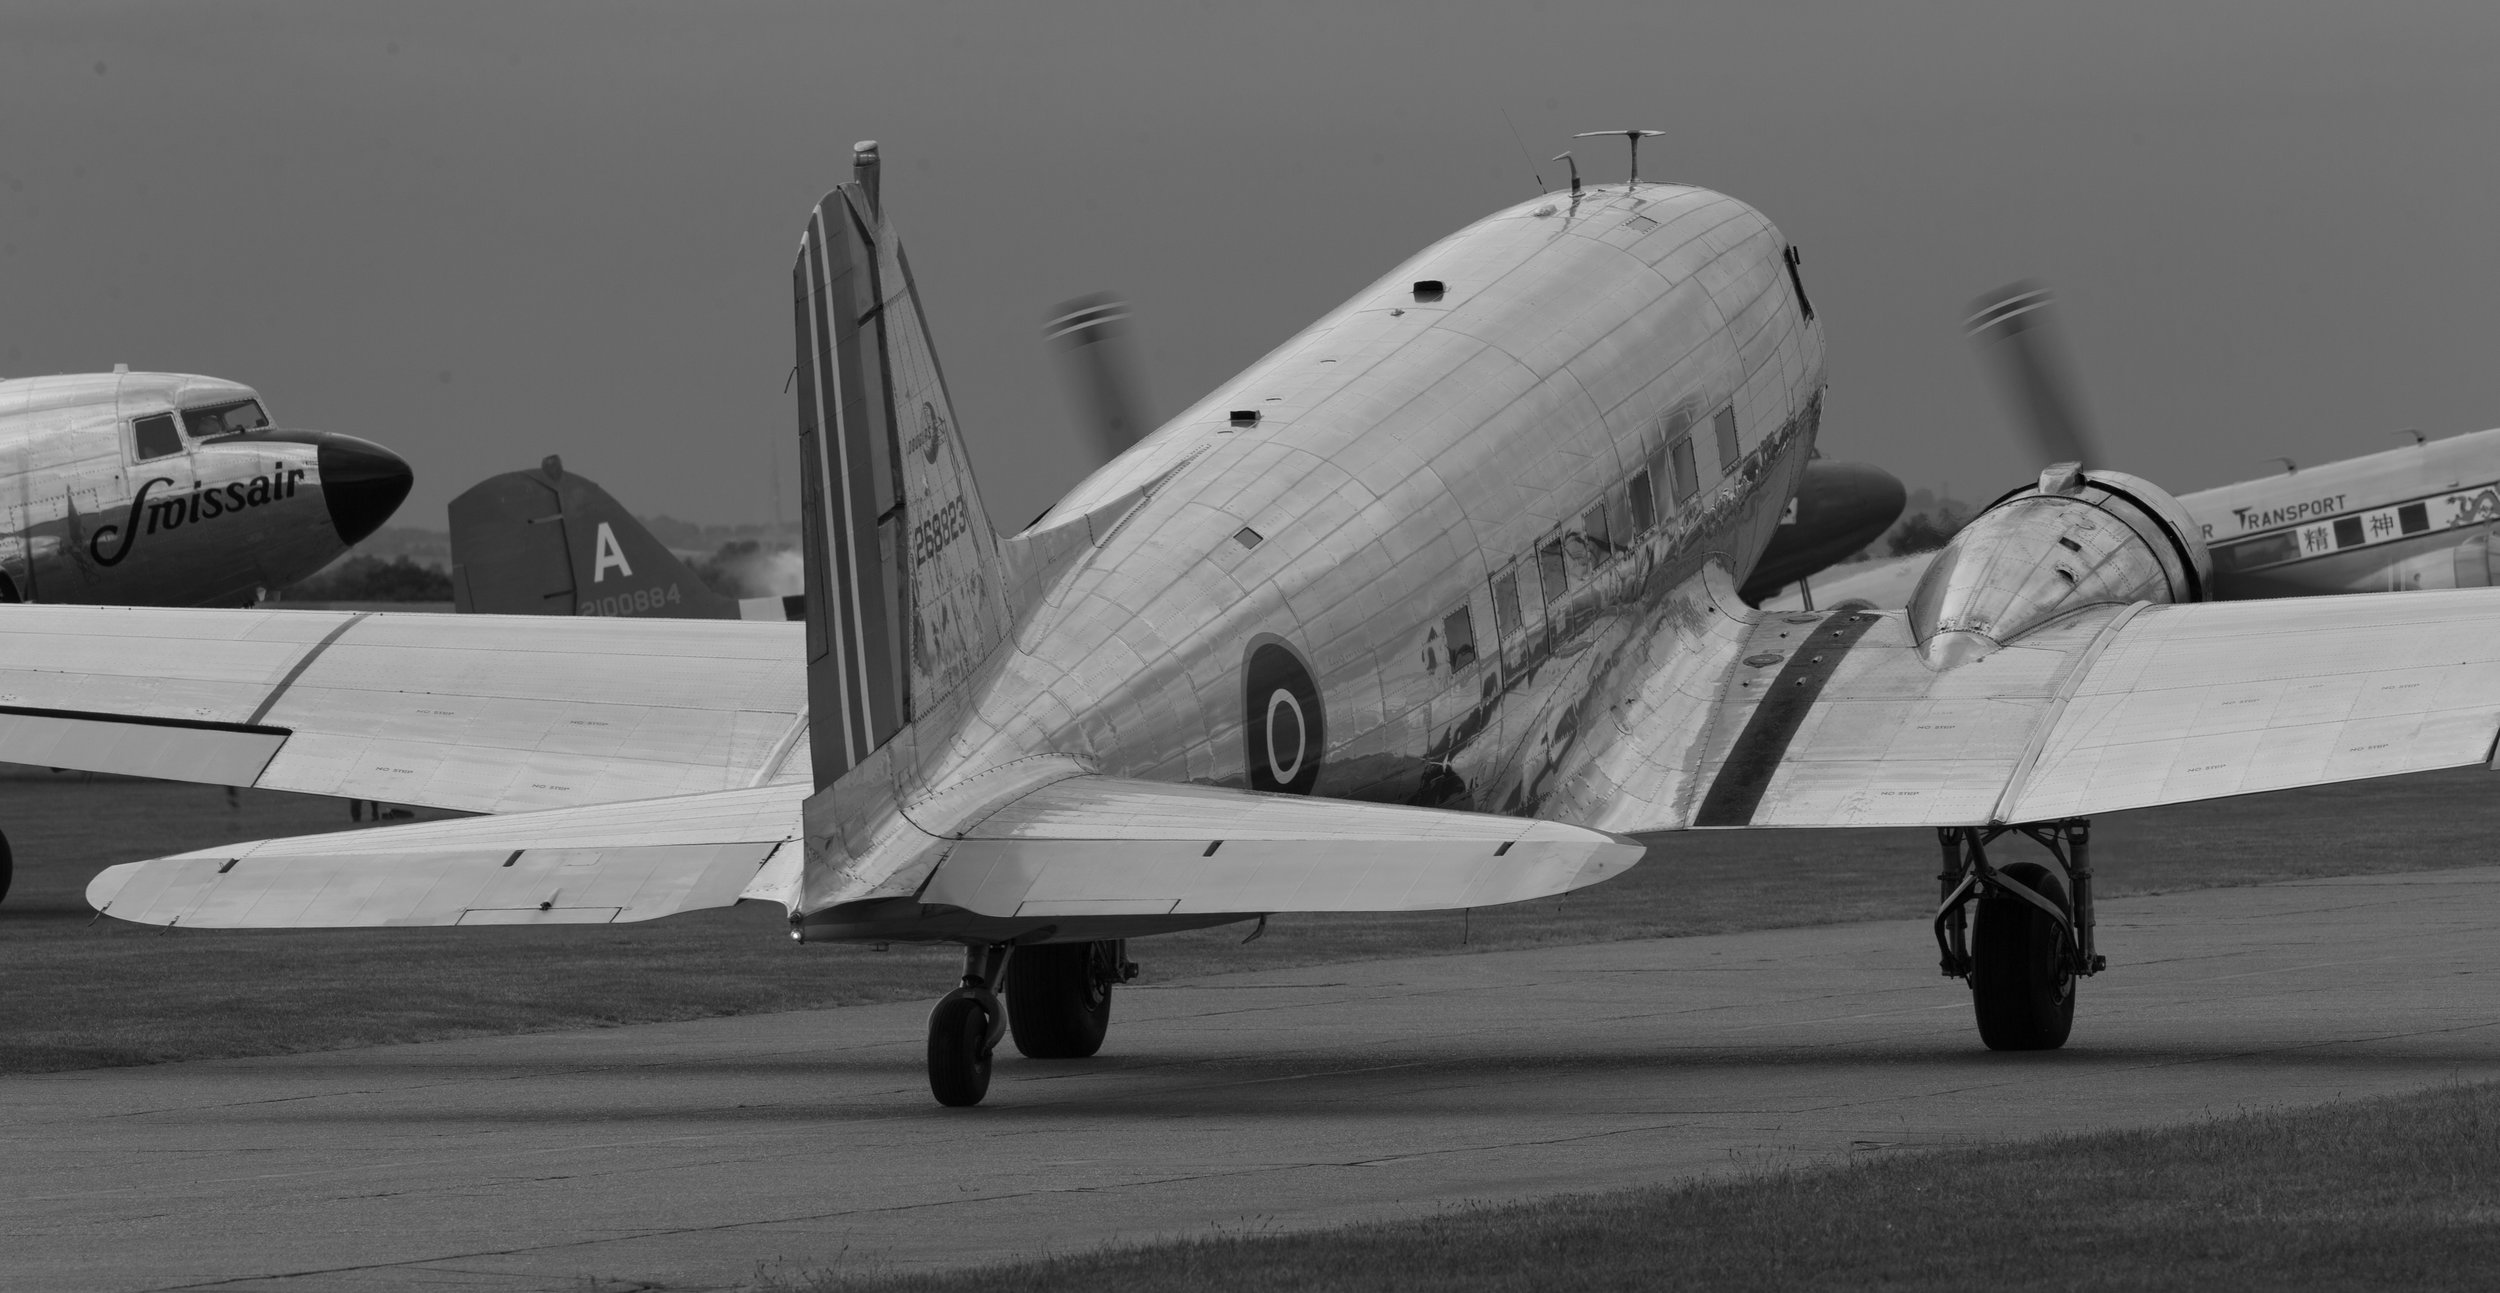 Dc3's at Duxford - 4th June 2019. Photo:Peter Hampson.